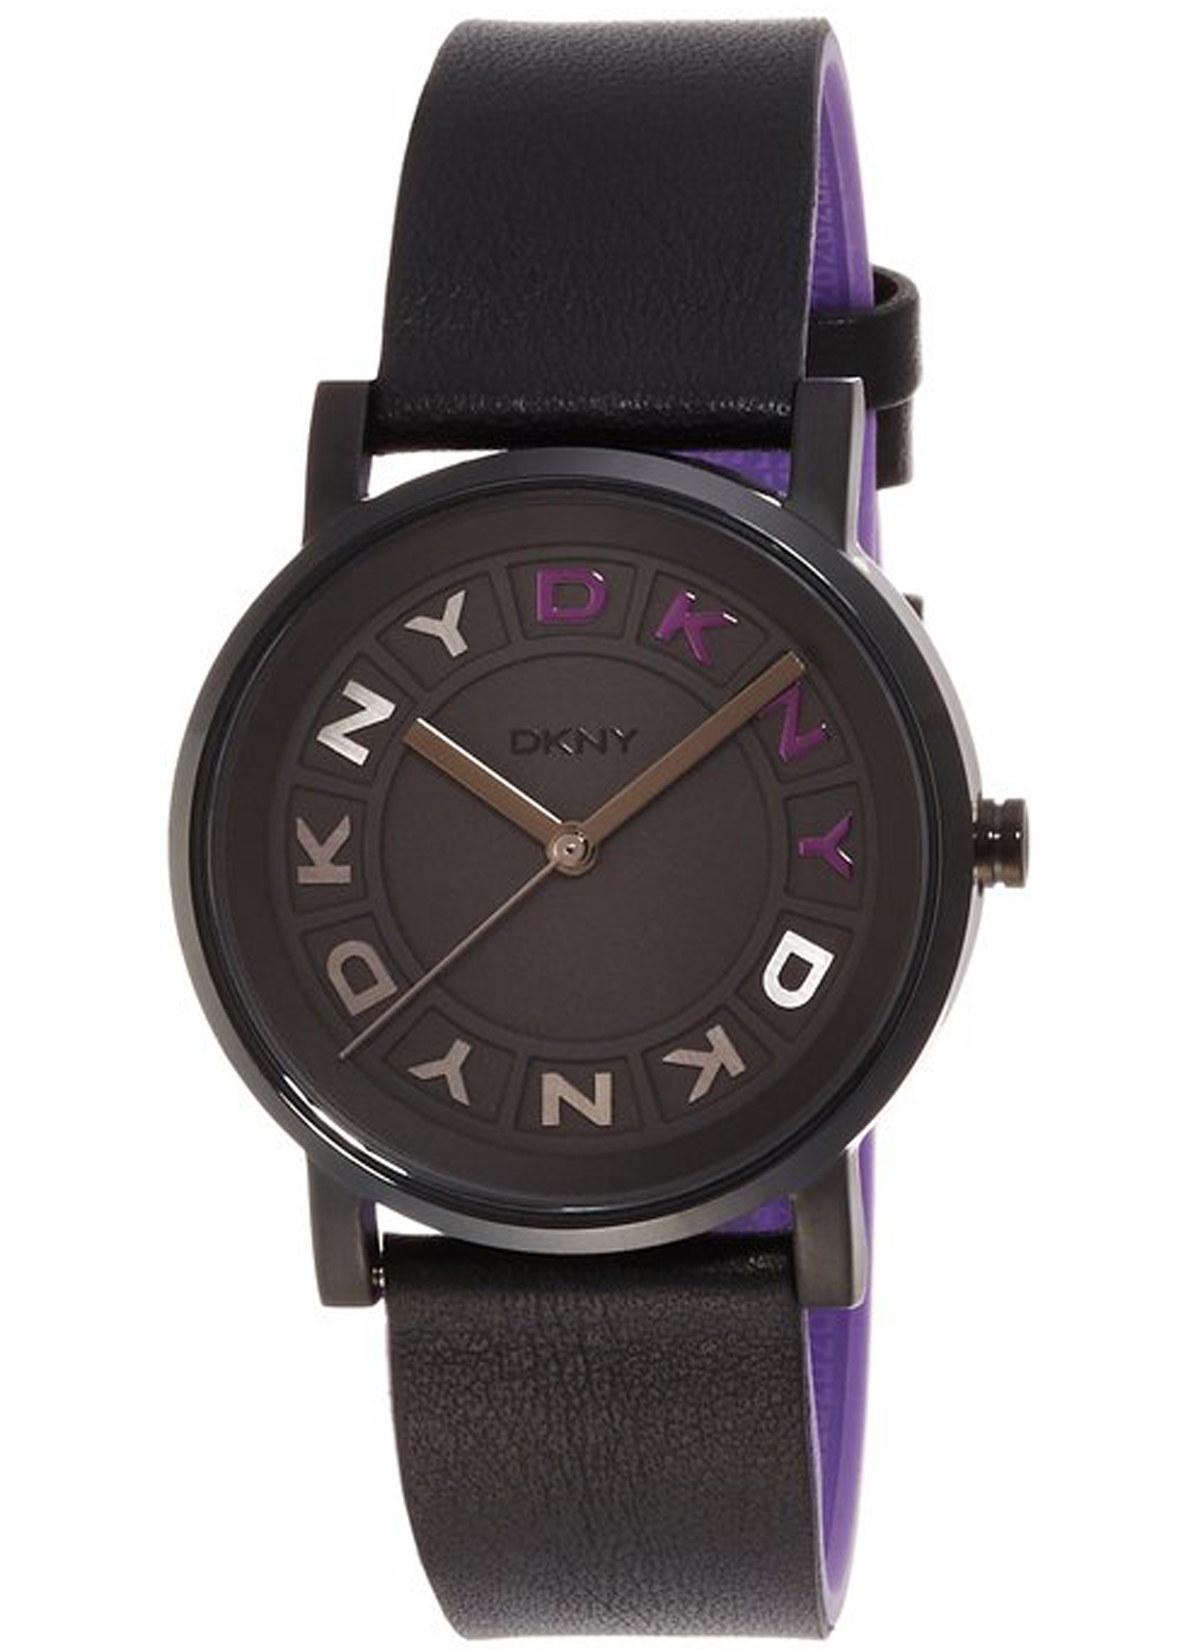 ccd96743b10 Case Thickness 9 millimeters. Band Material leather calfskin. Band length  Women s Standard Band width 18 millimeters. Band Color multi. Dial color  Black